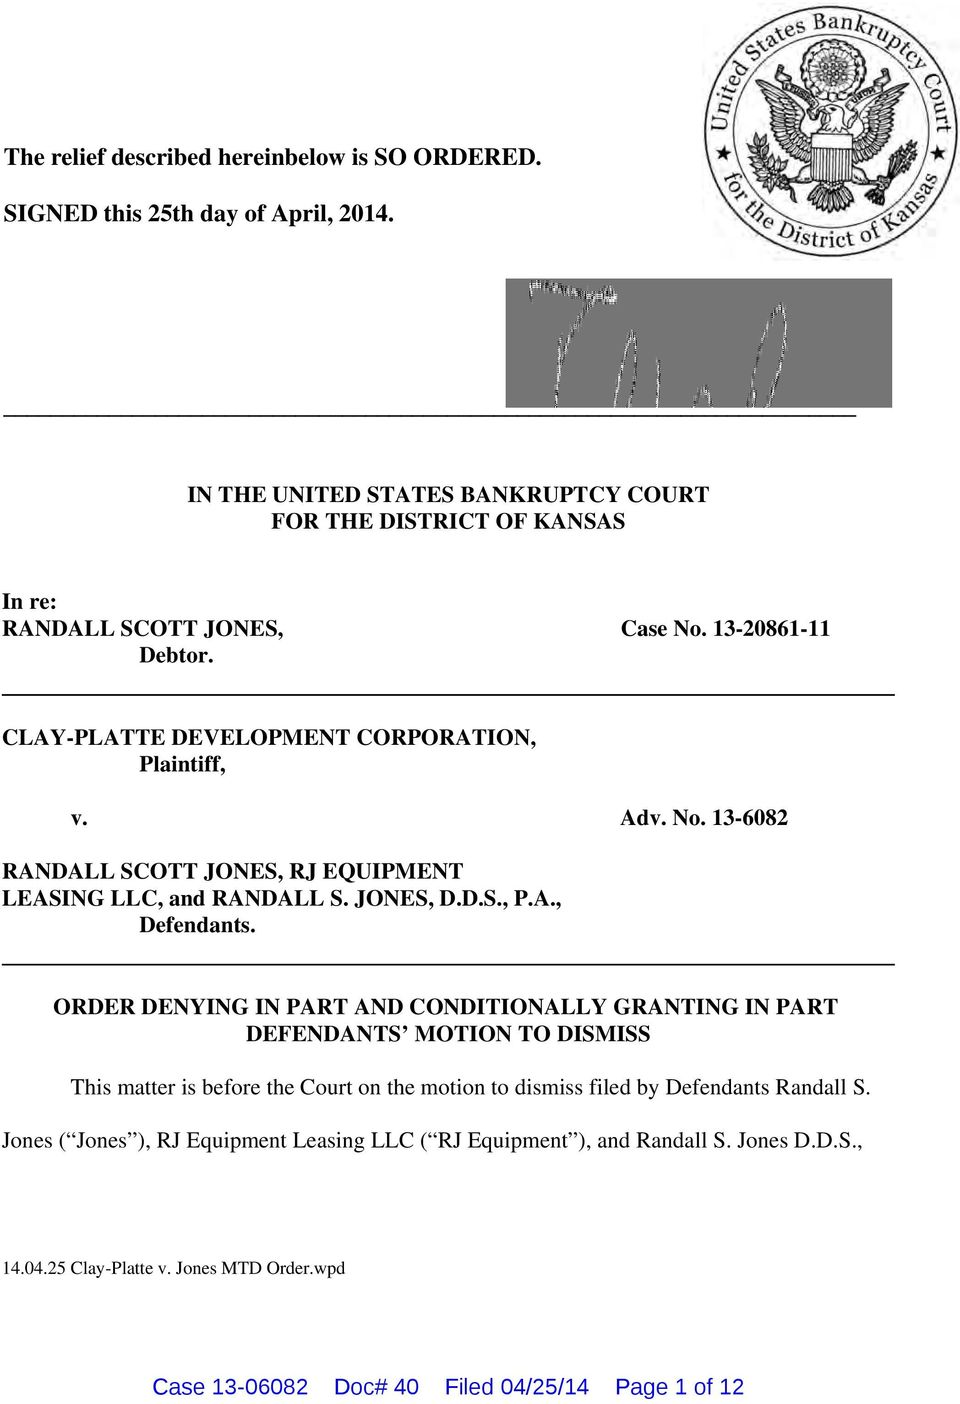 CLAY-PLATTE DEVELOPMENT CORPORATION, Plaintiff, v. Adv. No. 13-6082 RANDALL SCOTT JONES, RJ EQUIPMENT LEASING LLC, and RANDALL S. JONES, D.D.S., P.A., Defendants.